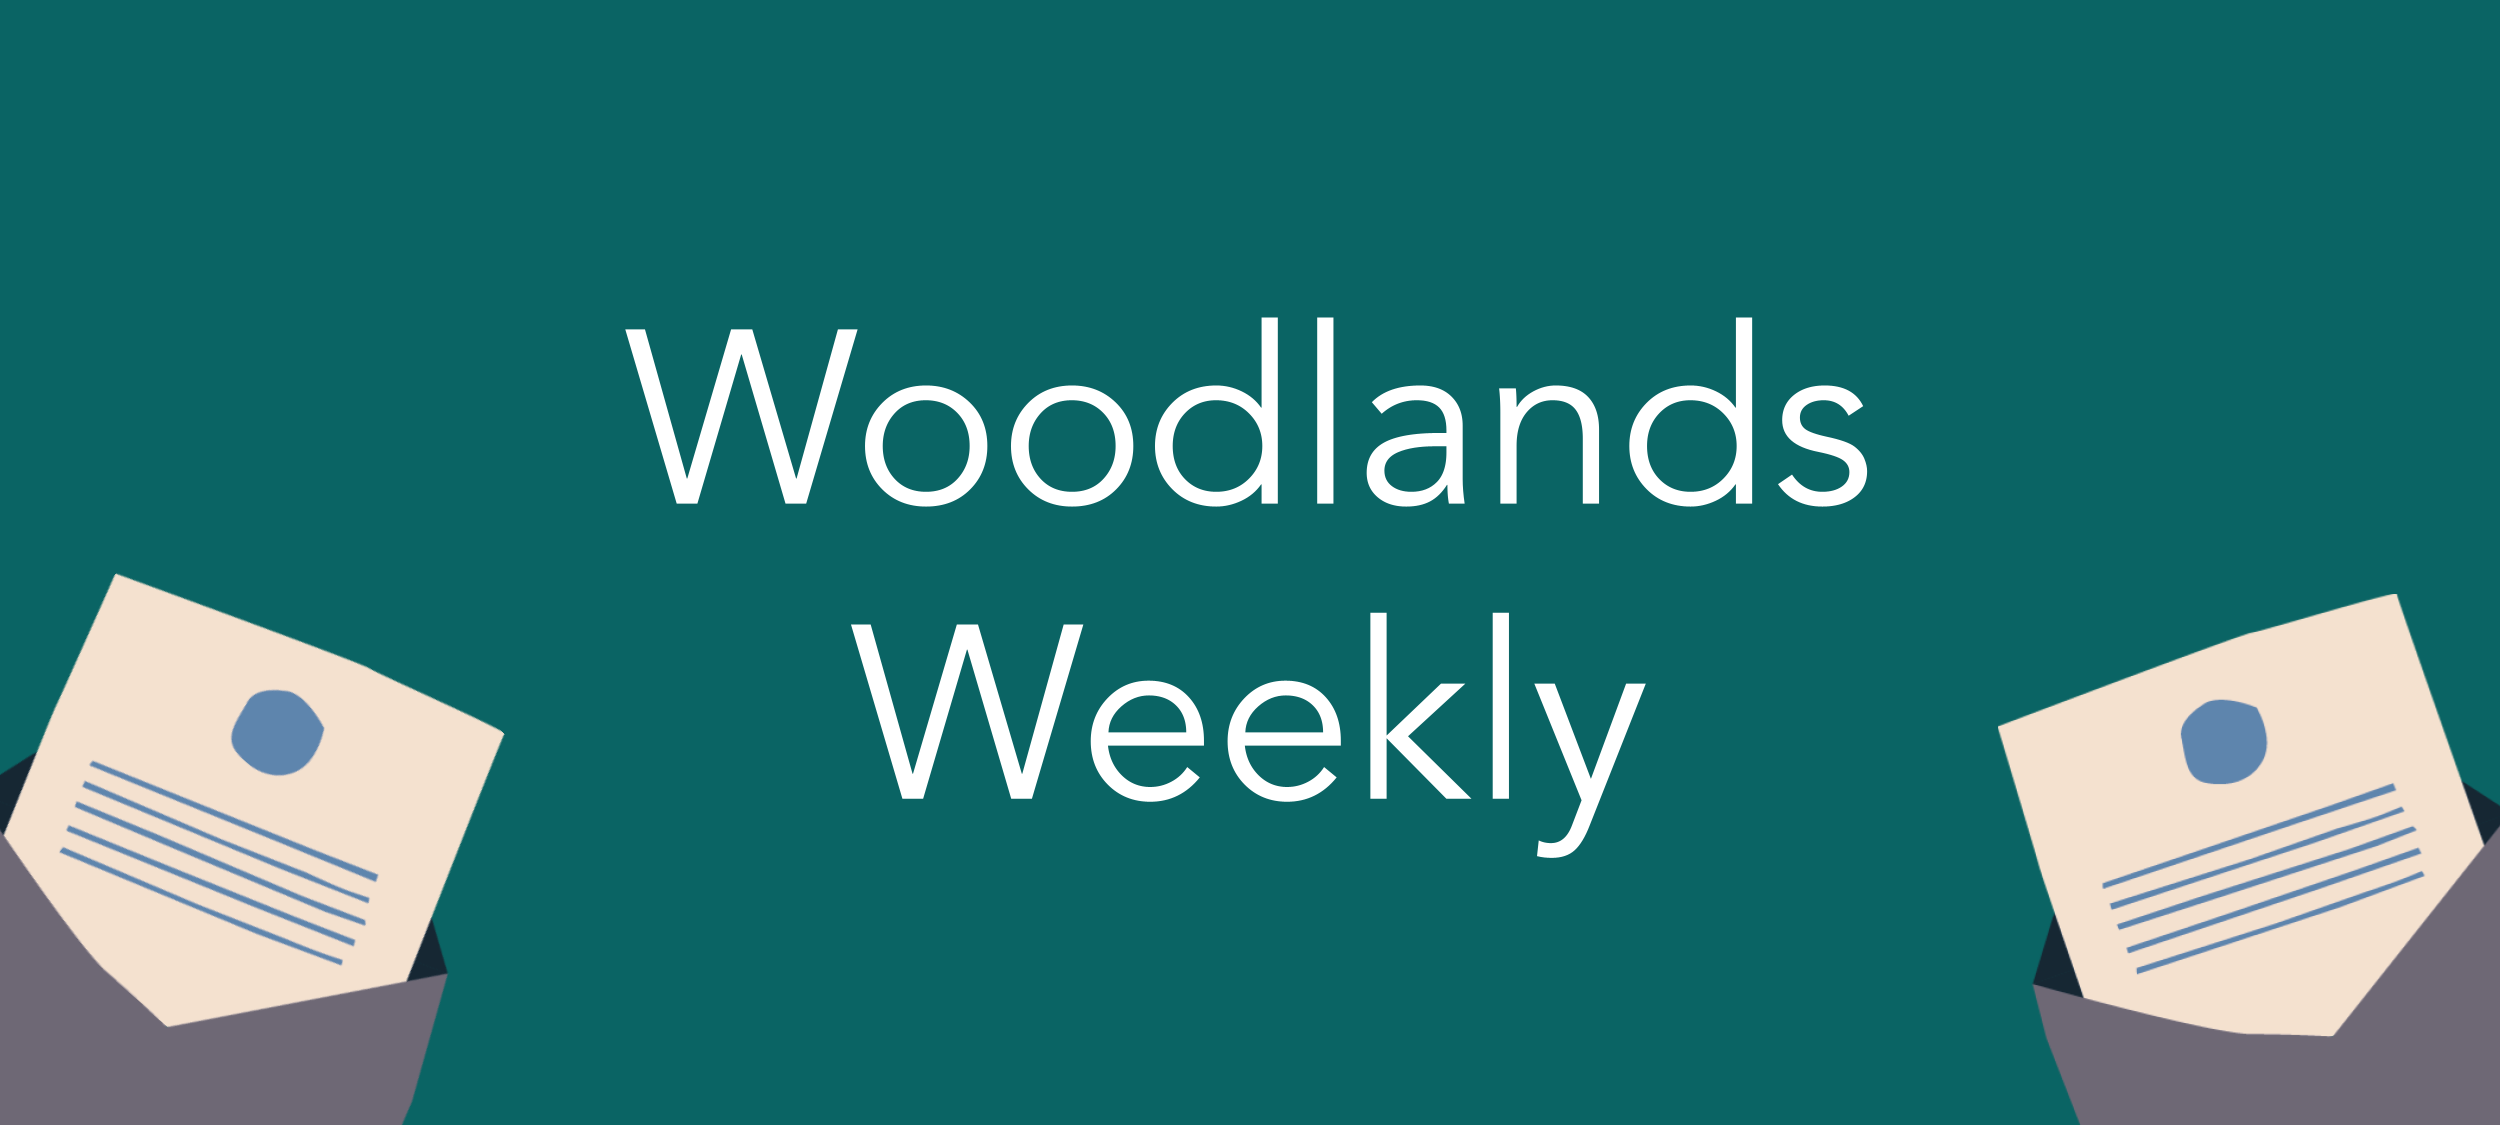 Woodlands Weekly | Friday 23rd April 2021